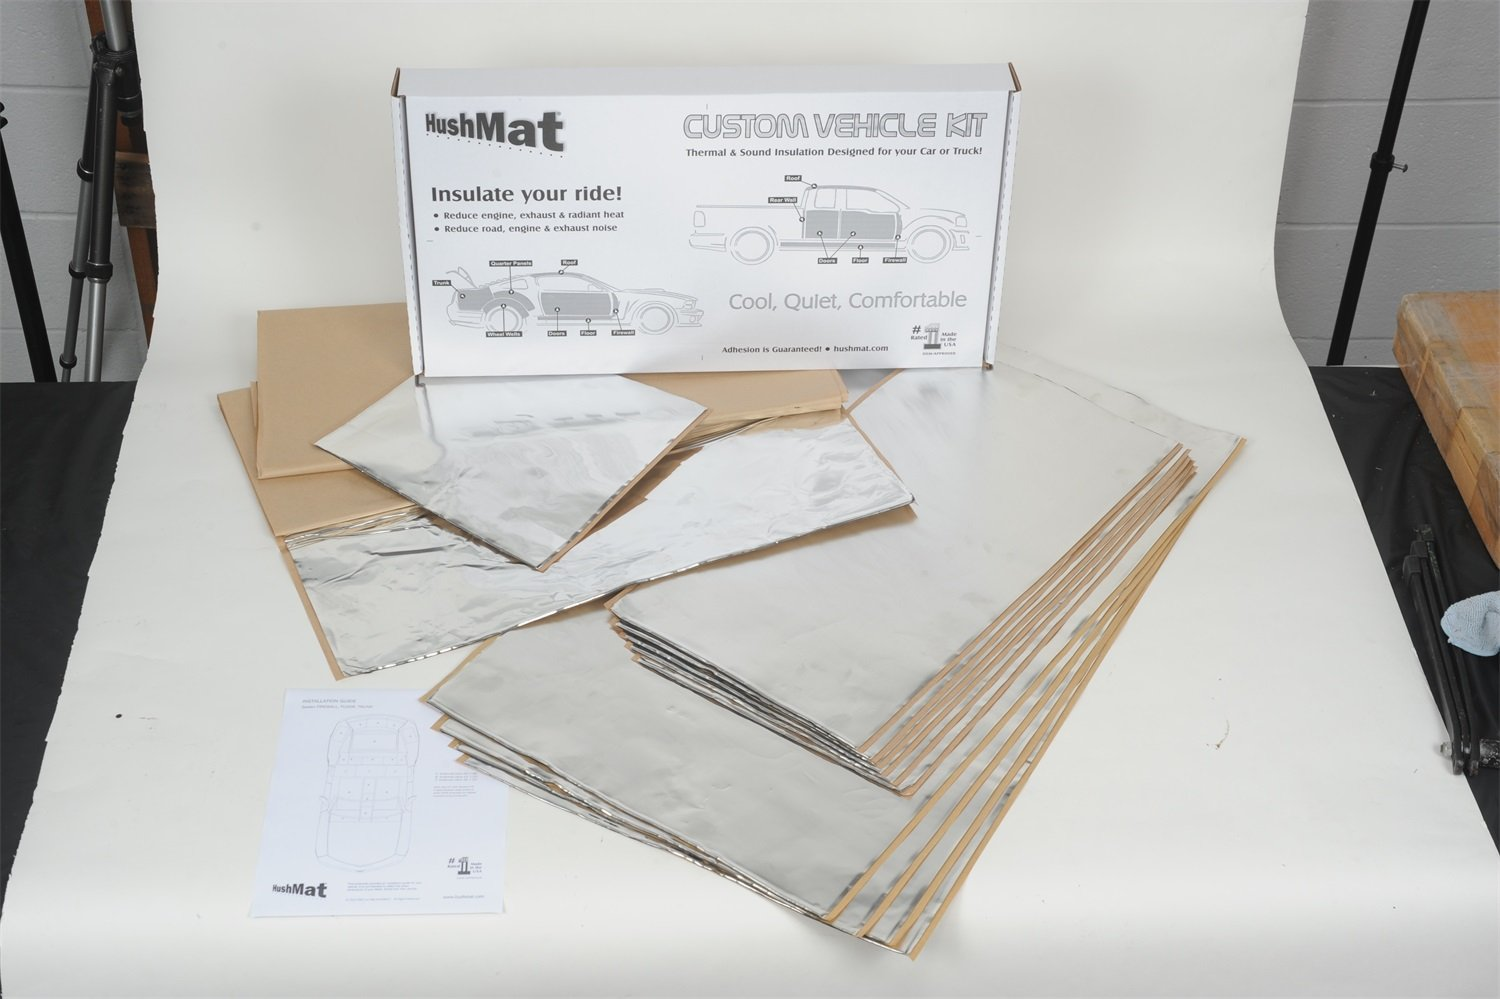 2006-2015 Chevy Impala - Floor HushMat 650211 Sound and Thermal Insulation Kit